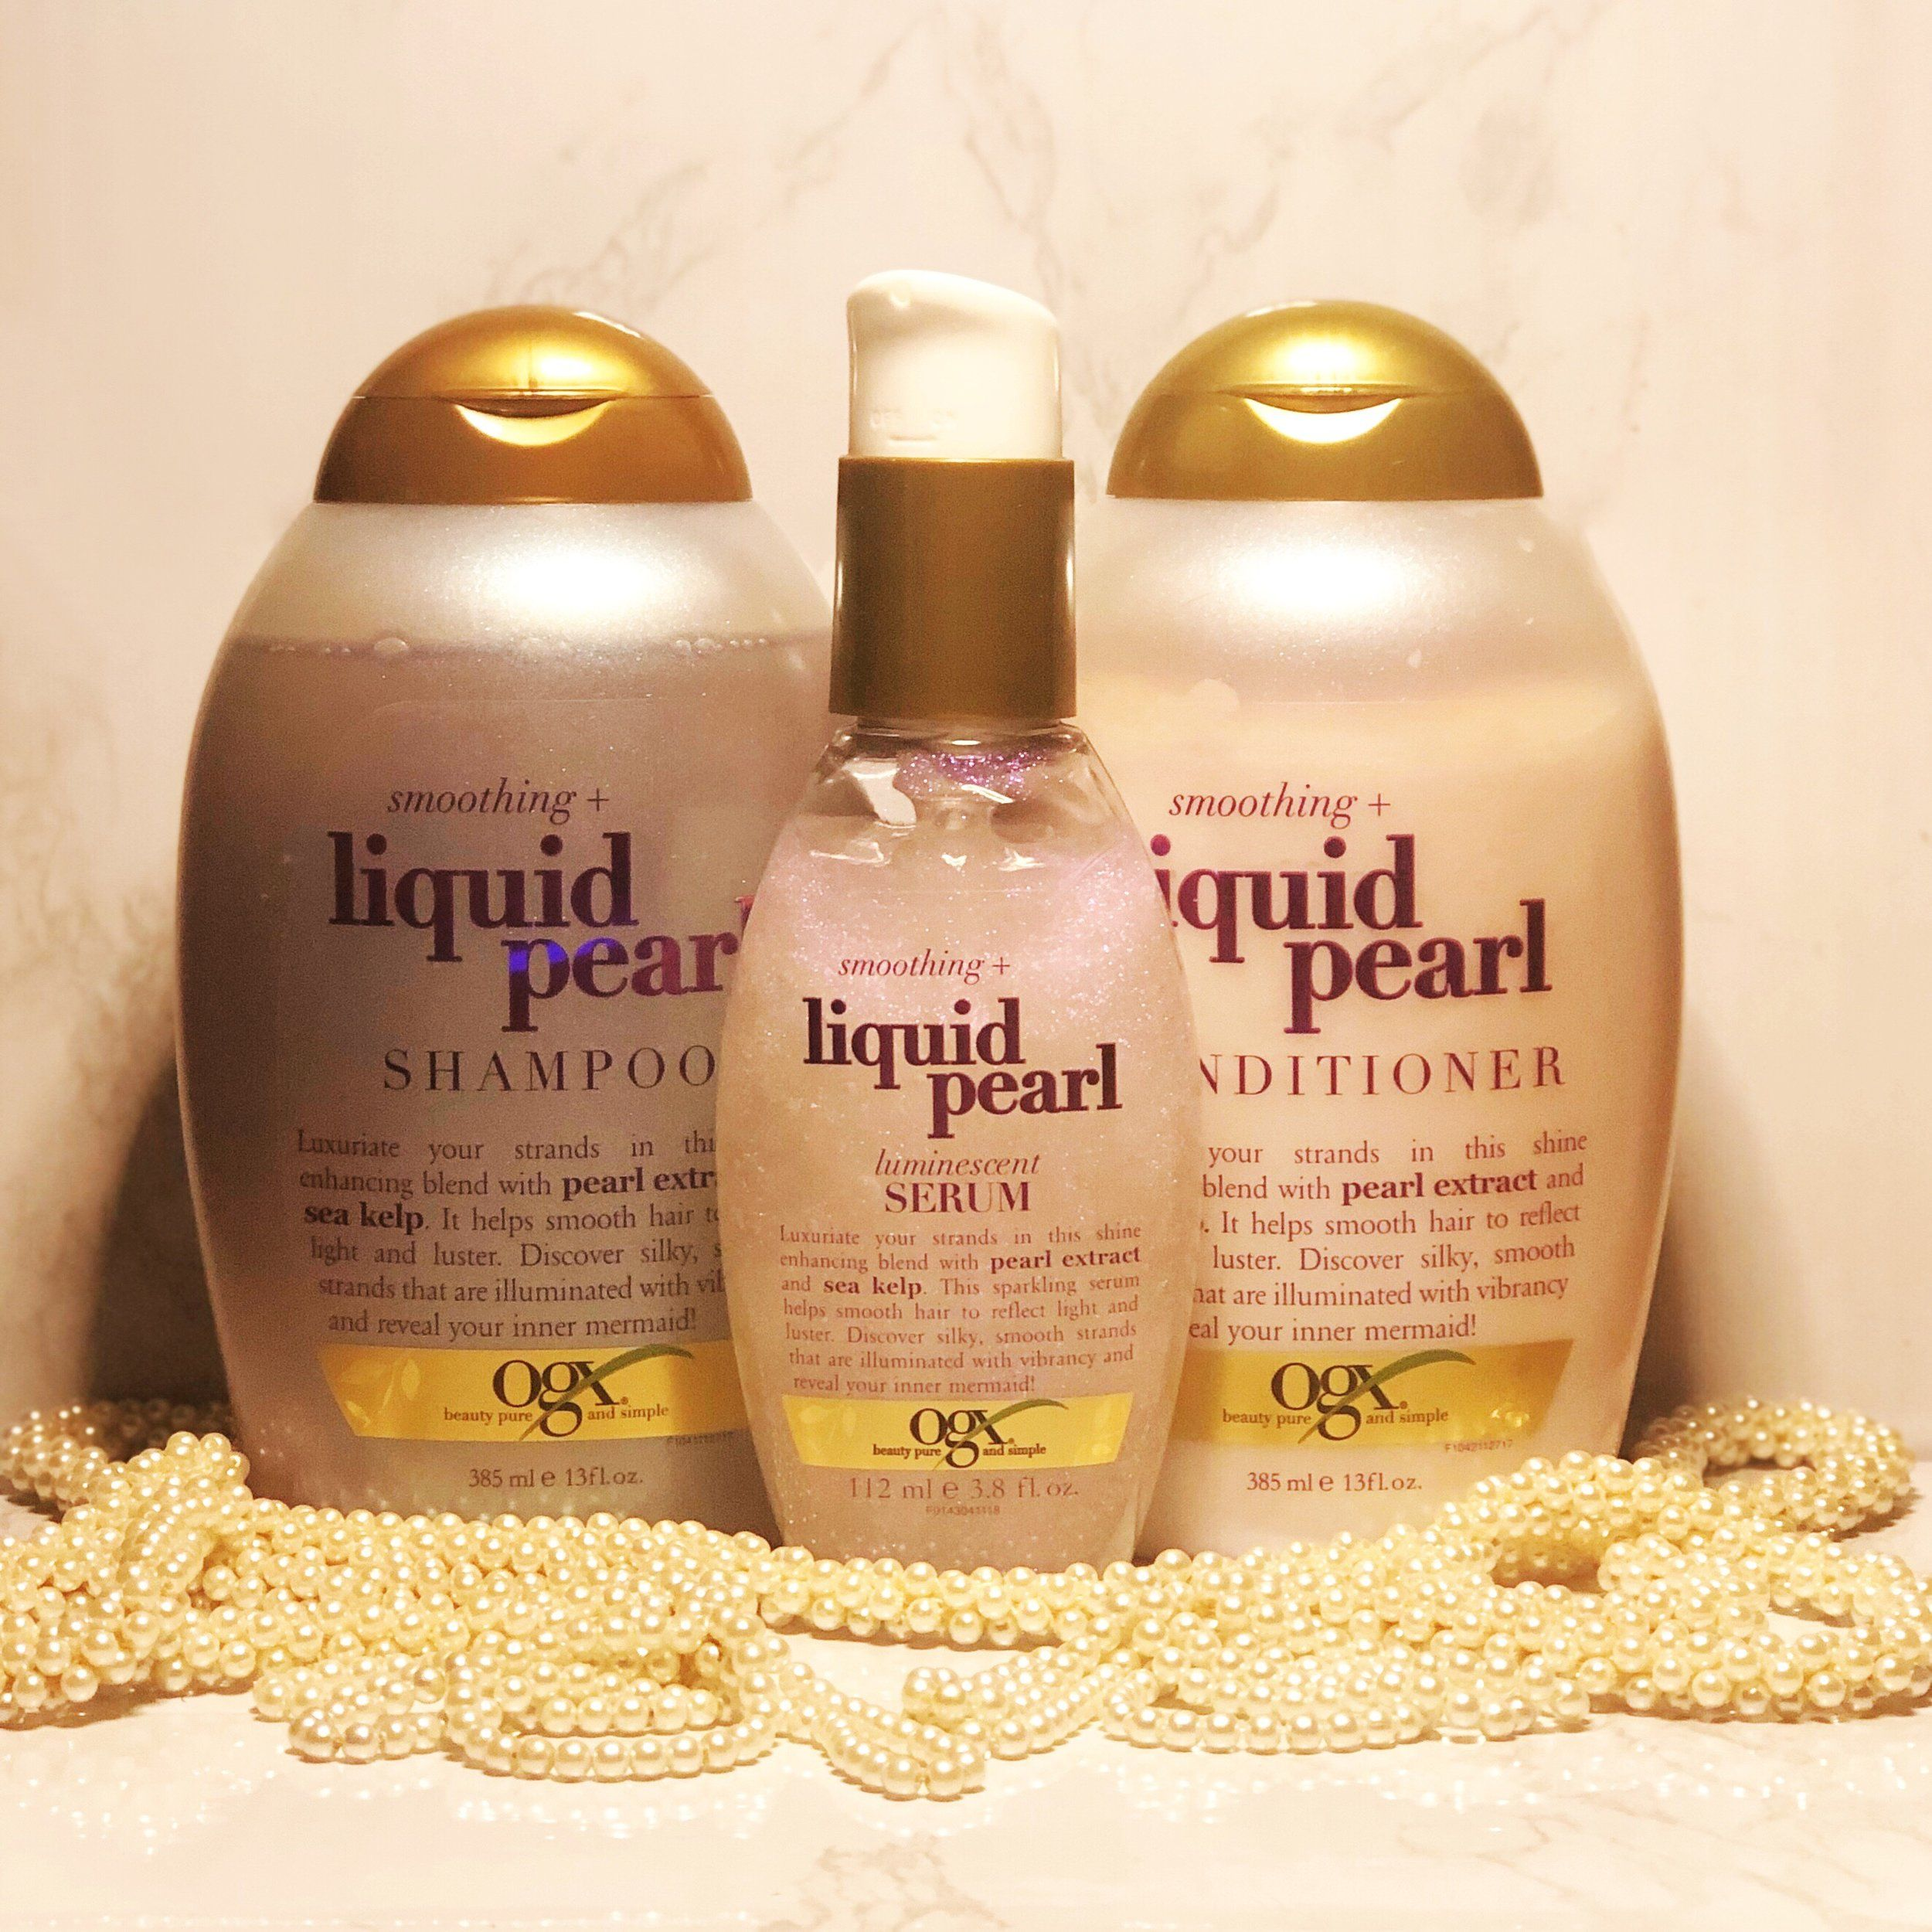 Review of the Newest Release from OGX that will give you Mermaid Tresses all Summer Long the Smoothing Liquid Pearl Collection OGX Liquid Pearl Collection